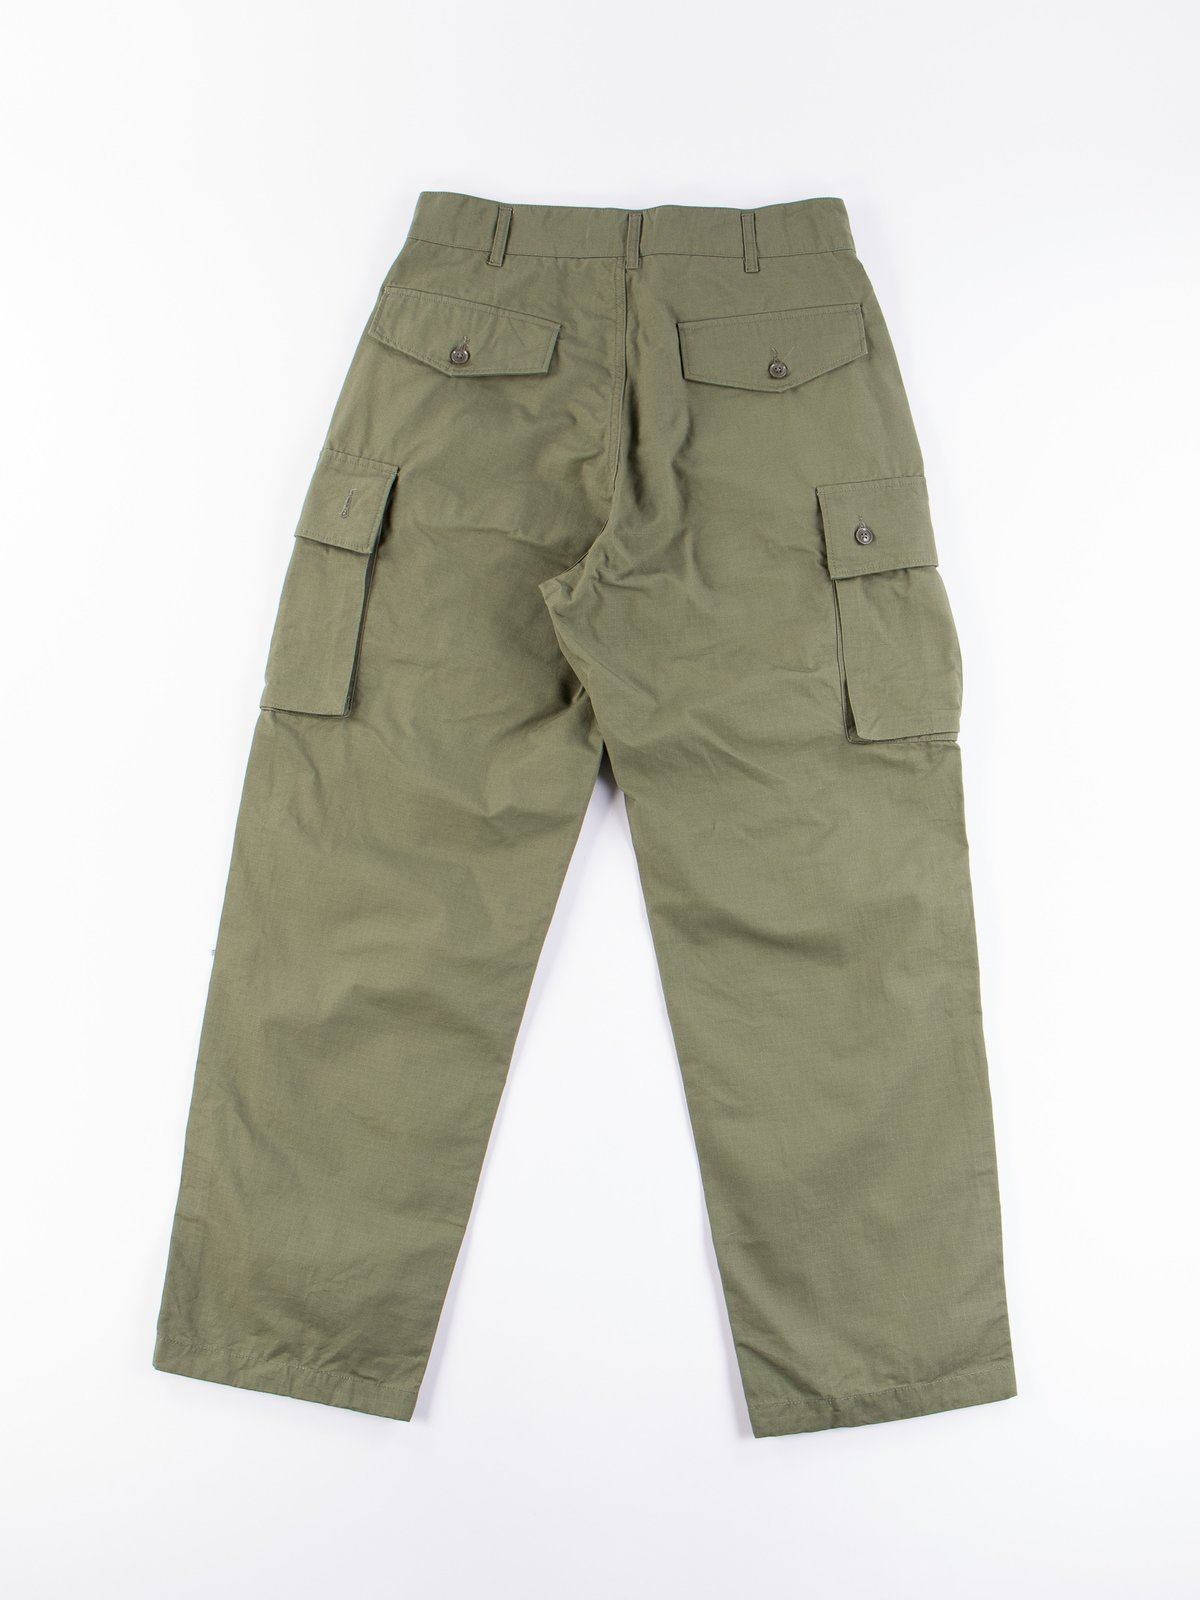 Olive Cotton Ripstop FA Pant - Image 5